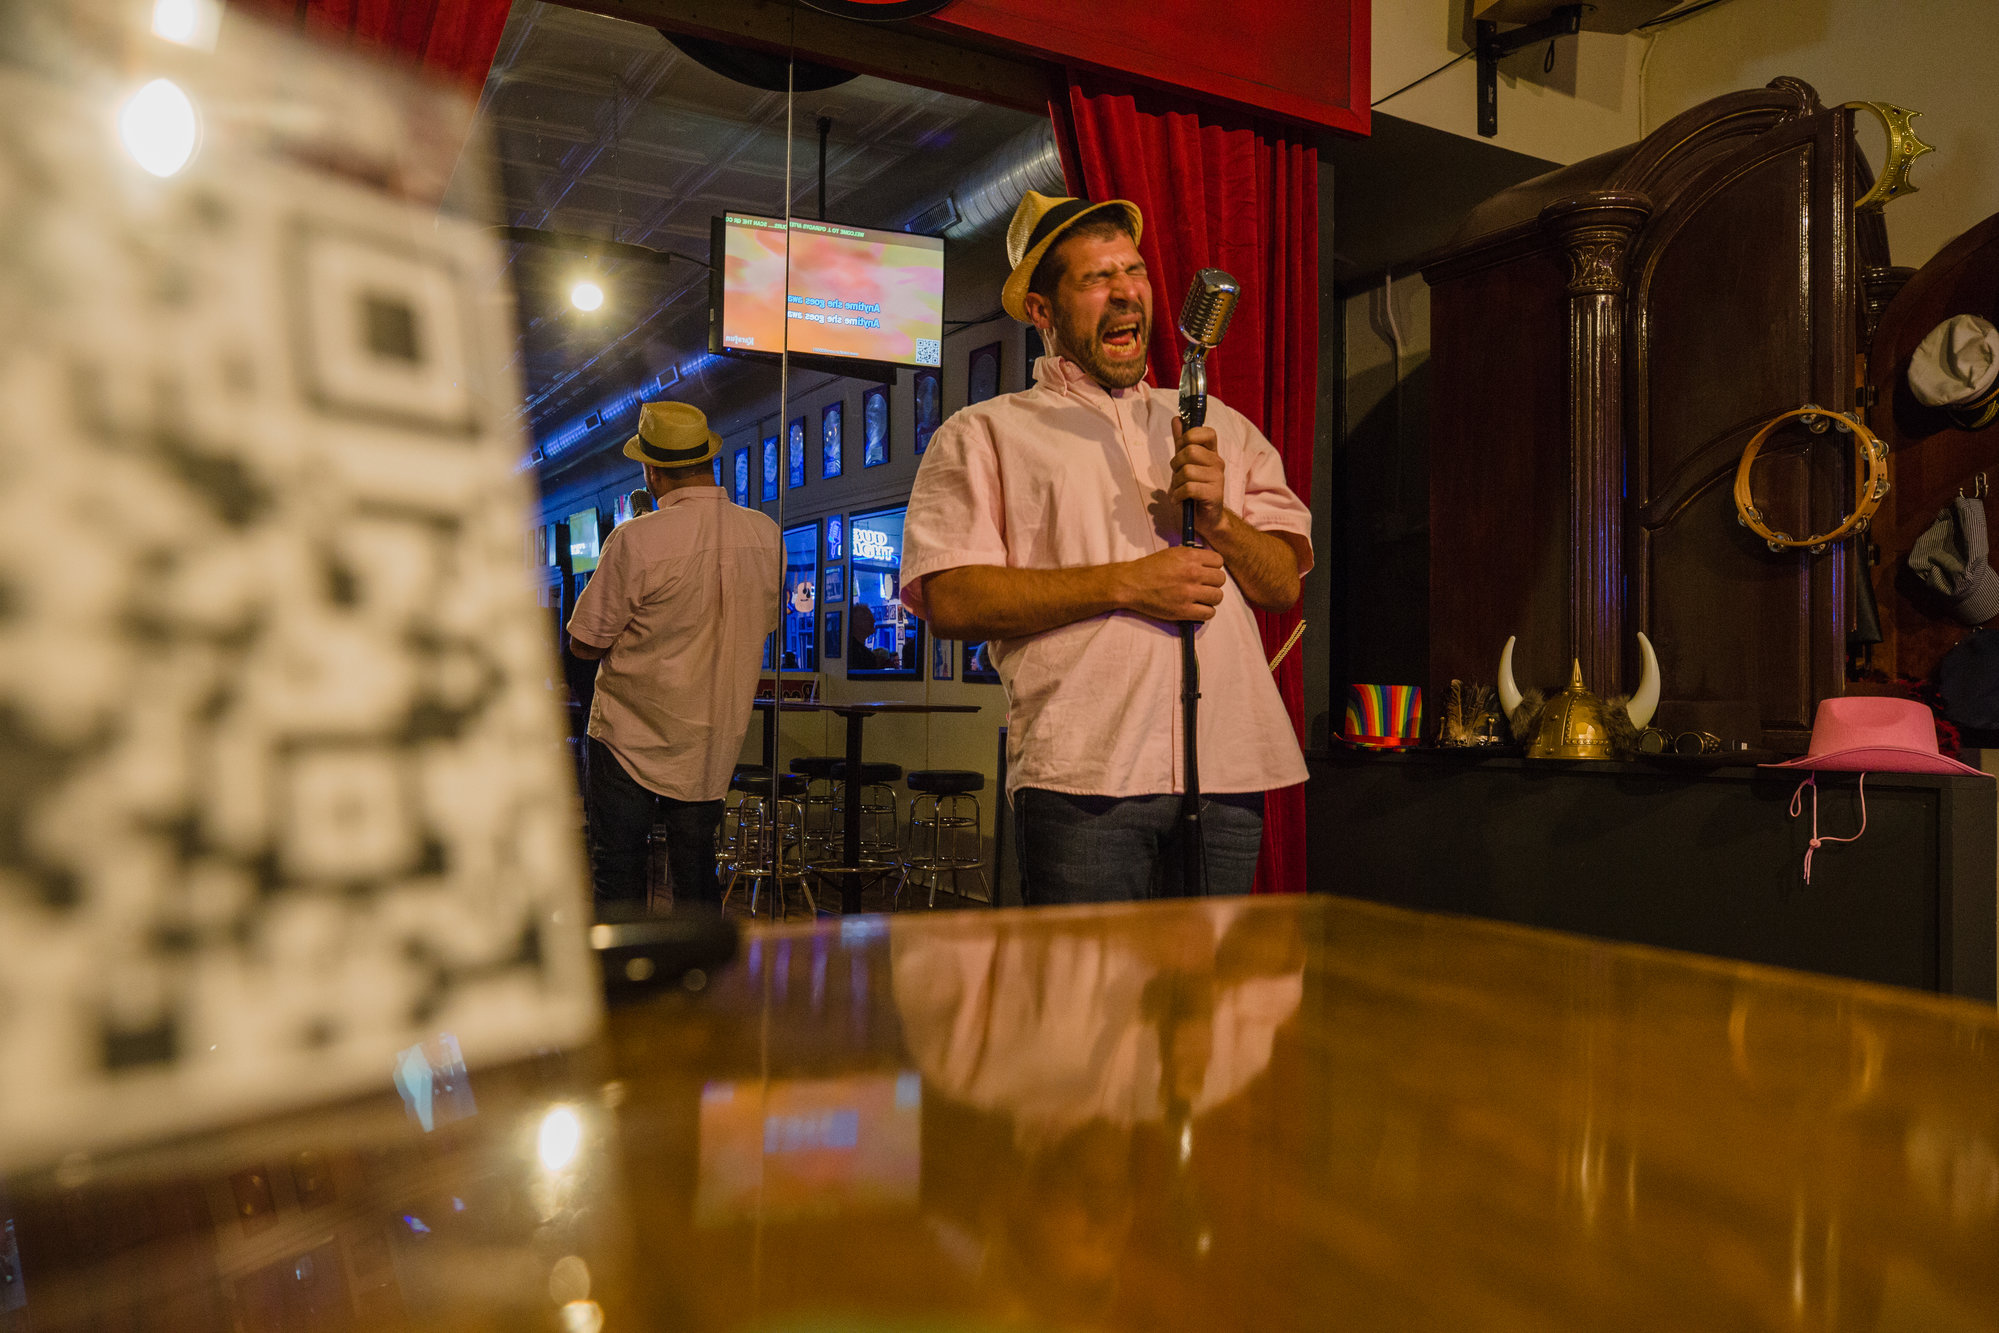 Joe Jeffcoat performs Thursday night at the new after-hours karaoke bar next door to J. O'Grady's in downtown Sumter.